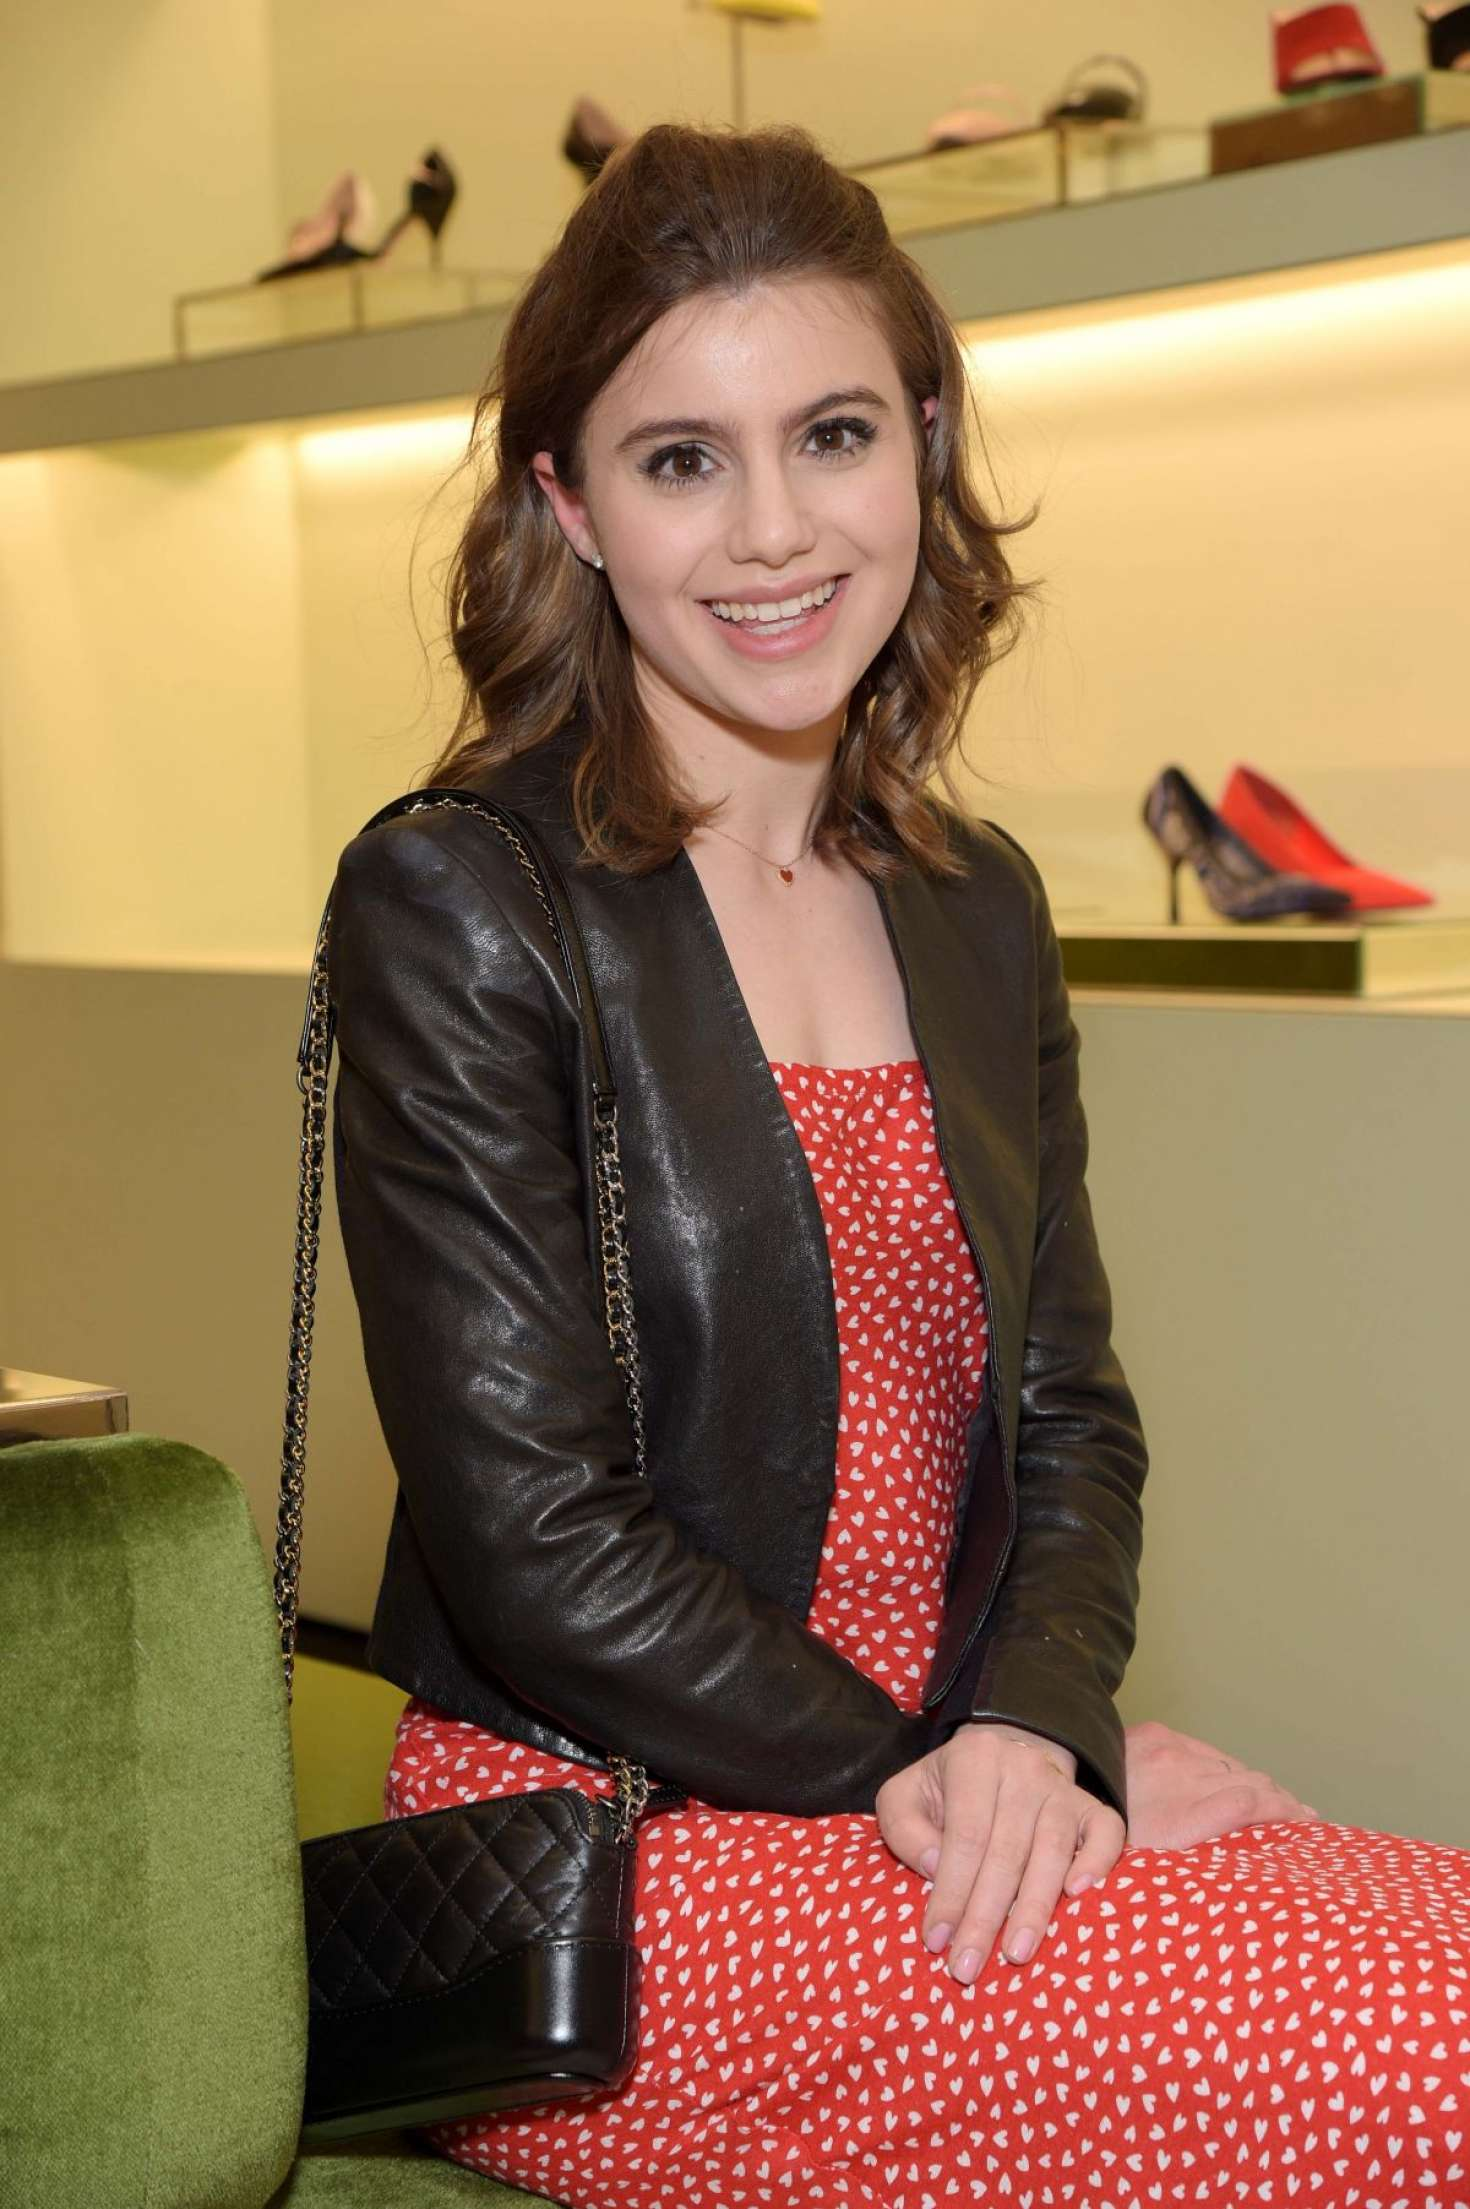 Sami Gayle - Bridget Moynahan's Our Shoes, Our Selves Book Launch in NY